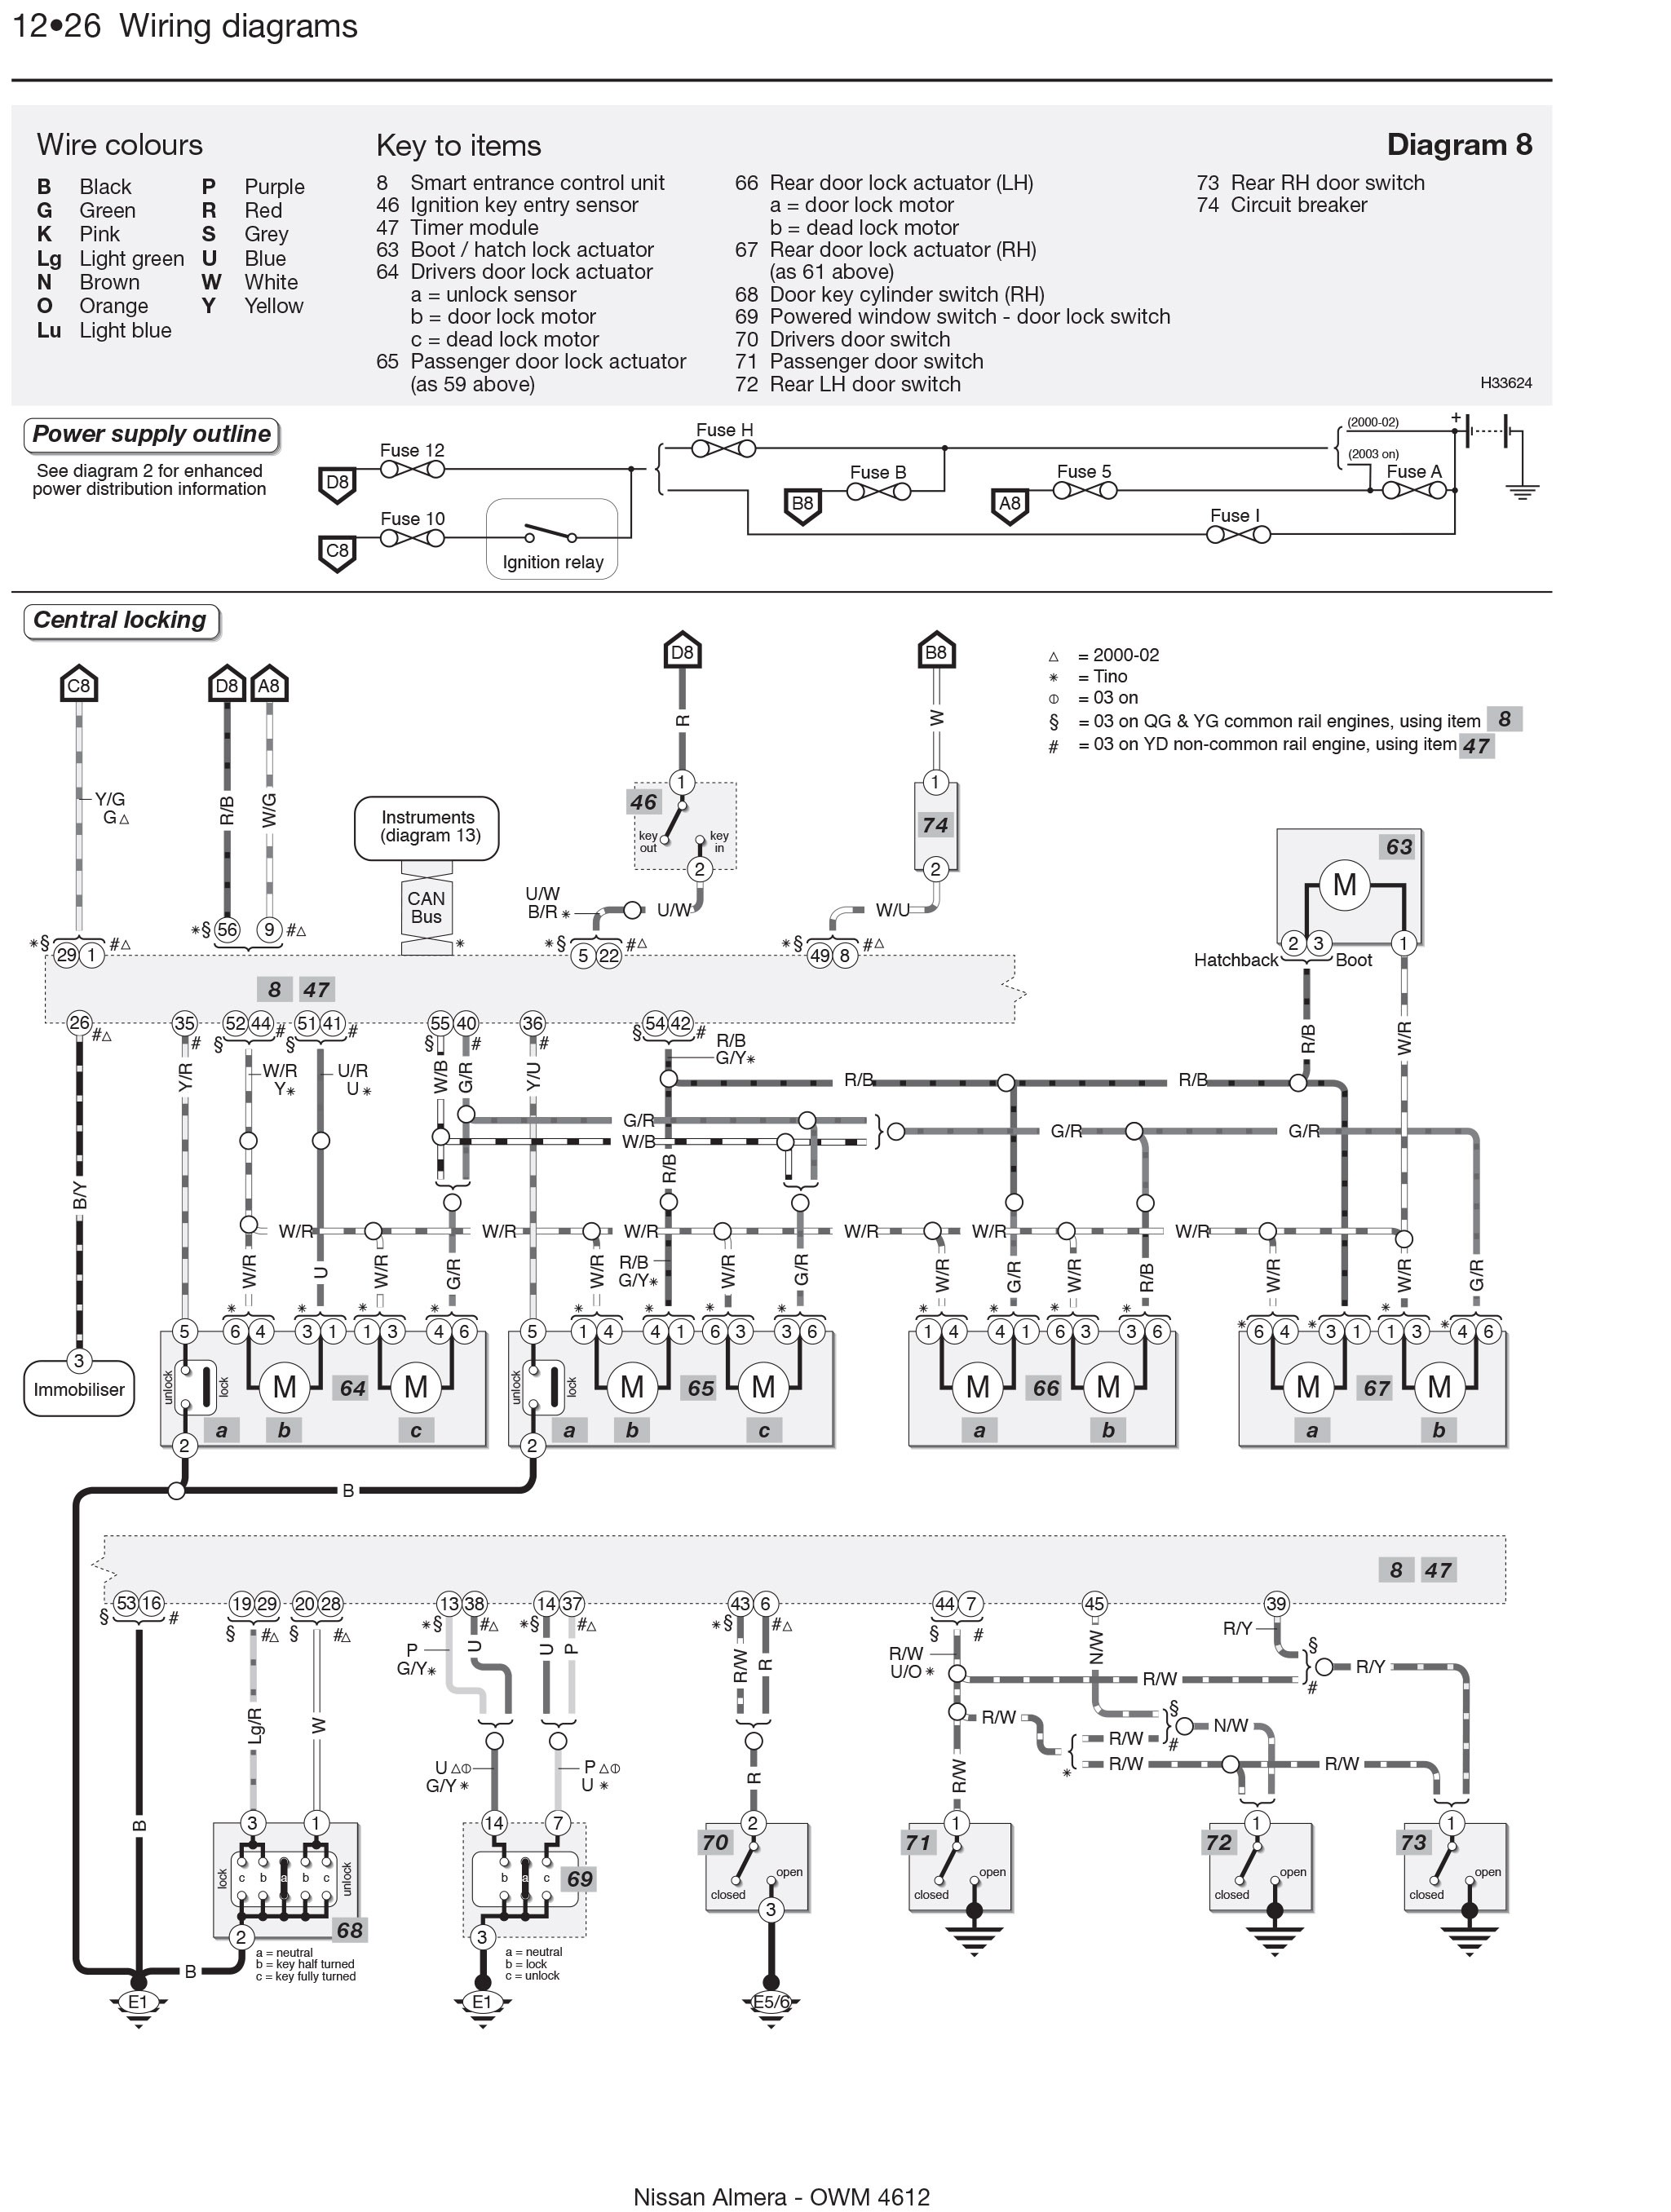 Nissan almera engine diagram radio wiring diagram nissan almera